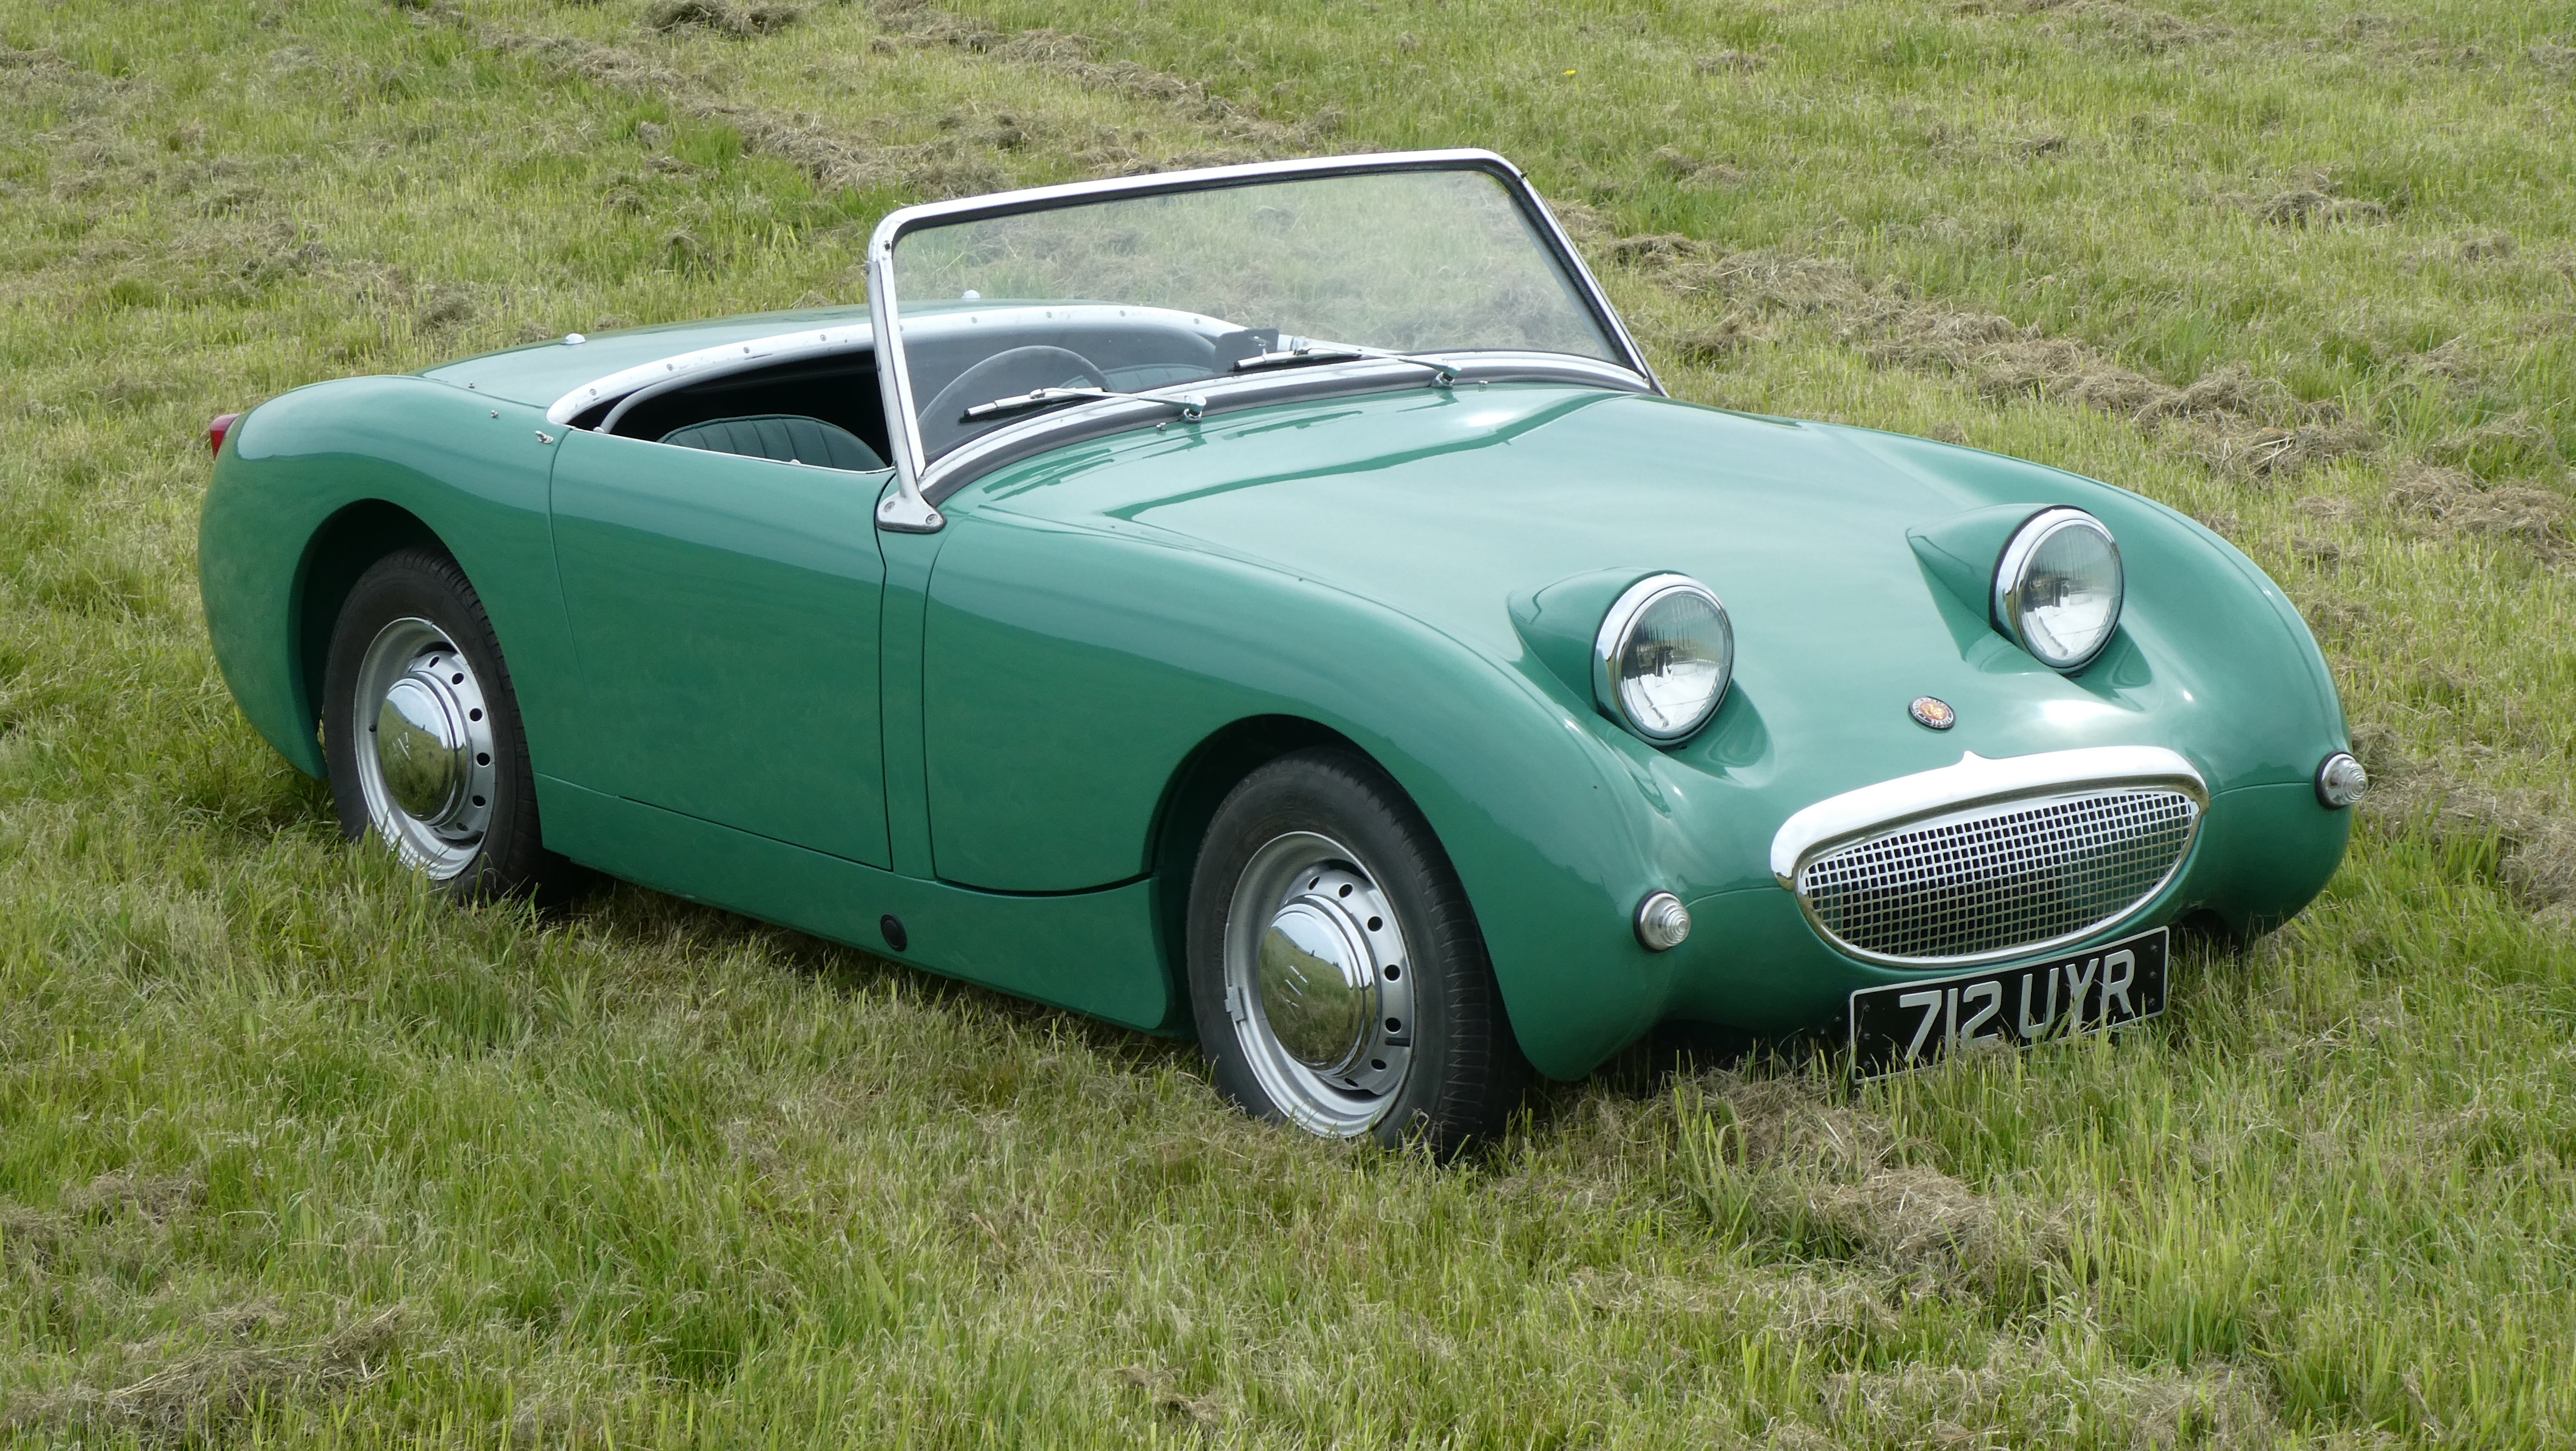 1959 Austin Healey Frogeye Sprite MK1 for sale